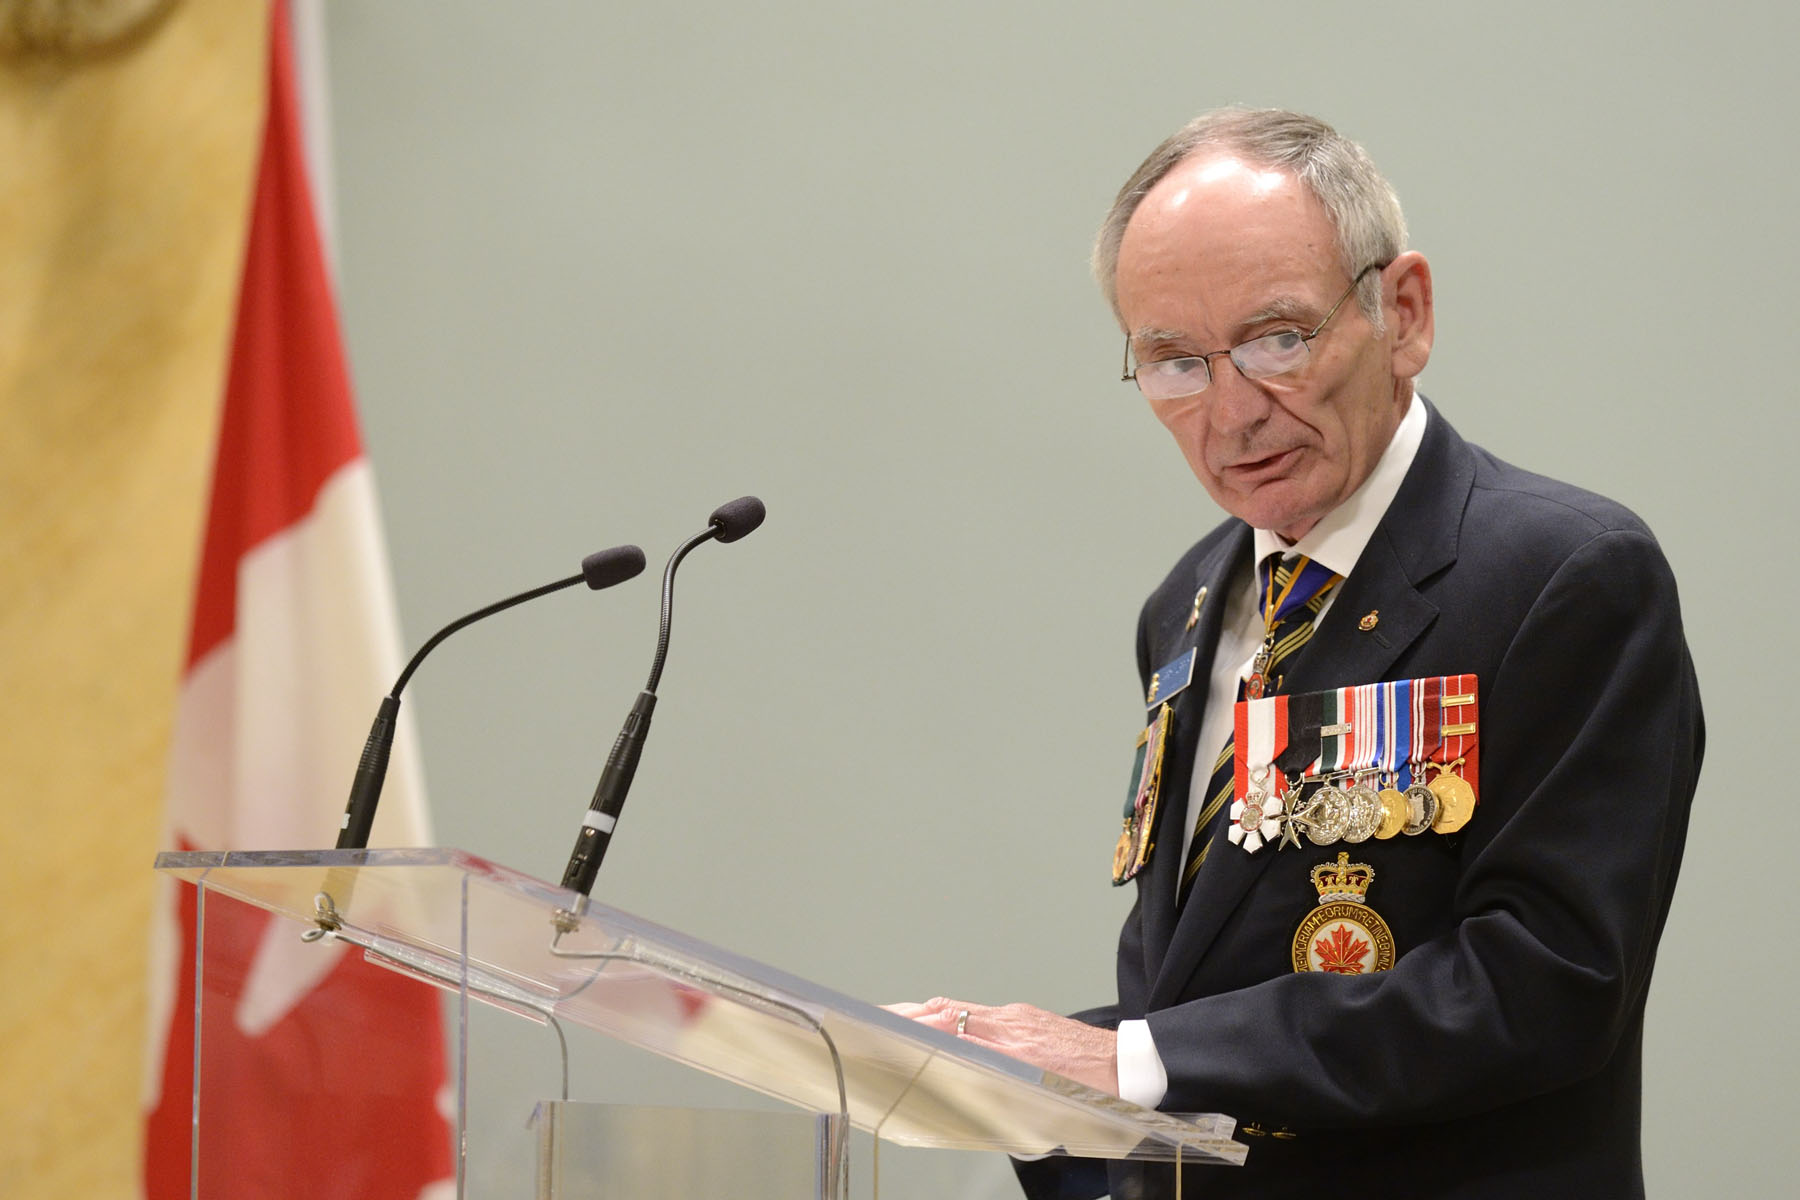 The Grand President of The Royal Canadian Legion Larry Murray delivered remarks.